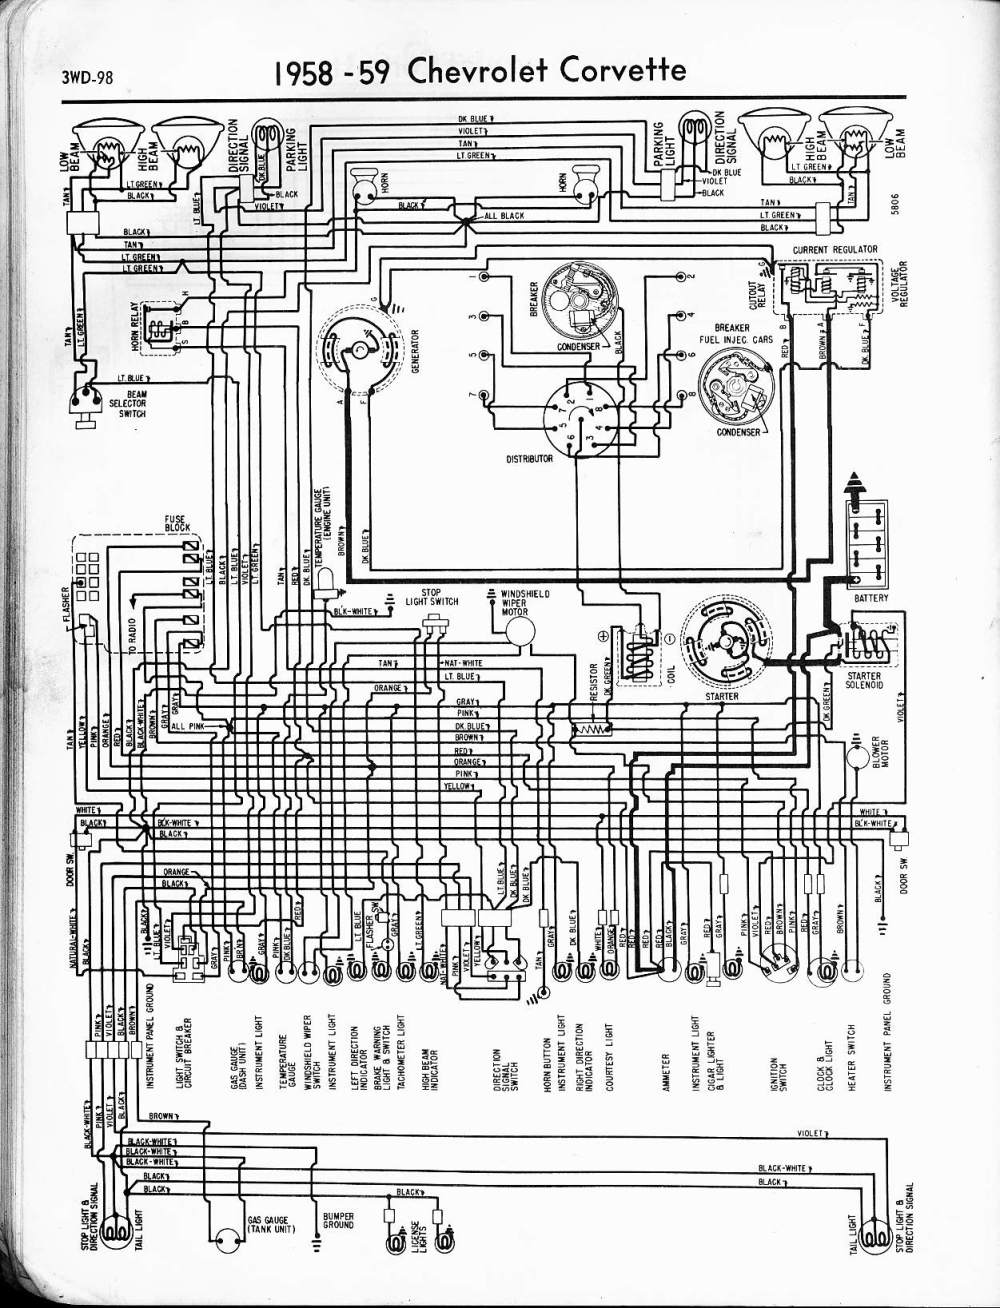 medium resolution of 1960 chevy wiring diagram wiring diagram todays 1971 corvette wiring diagram 1960 corvette wiring diagram